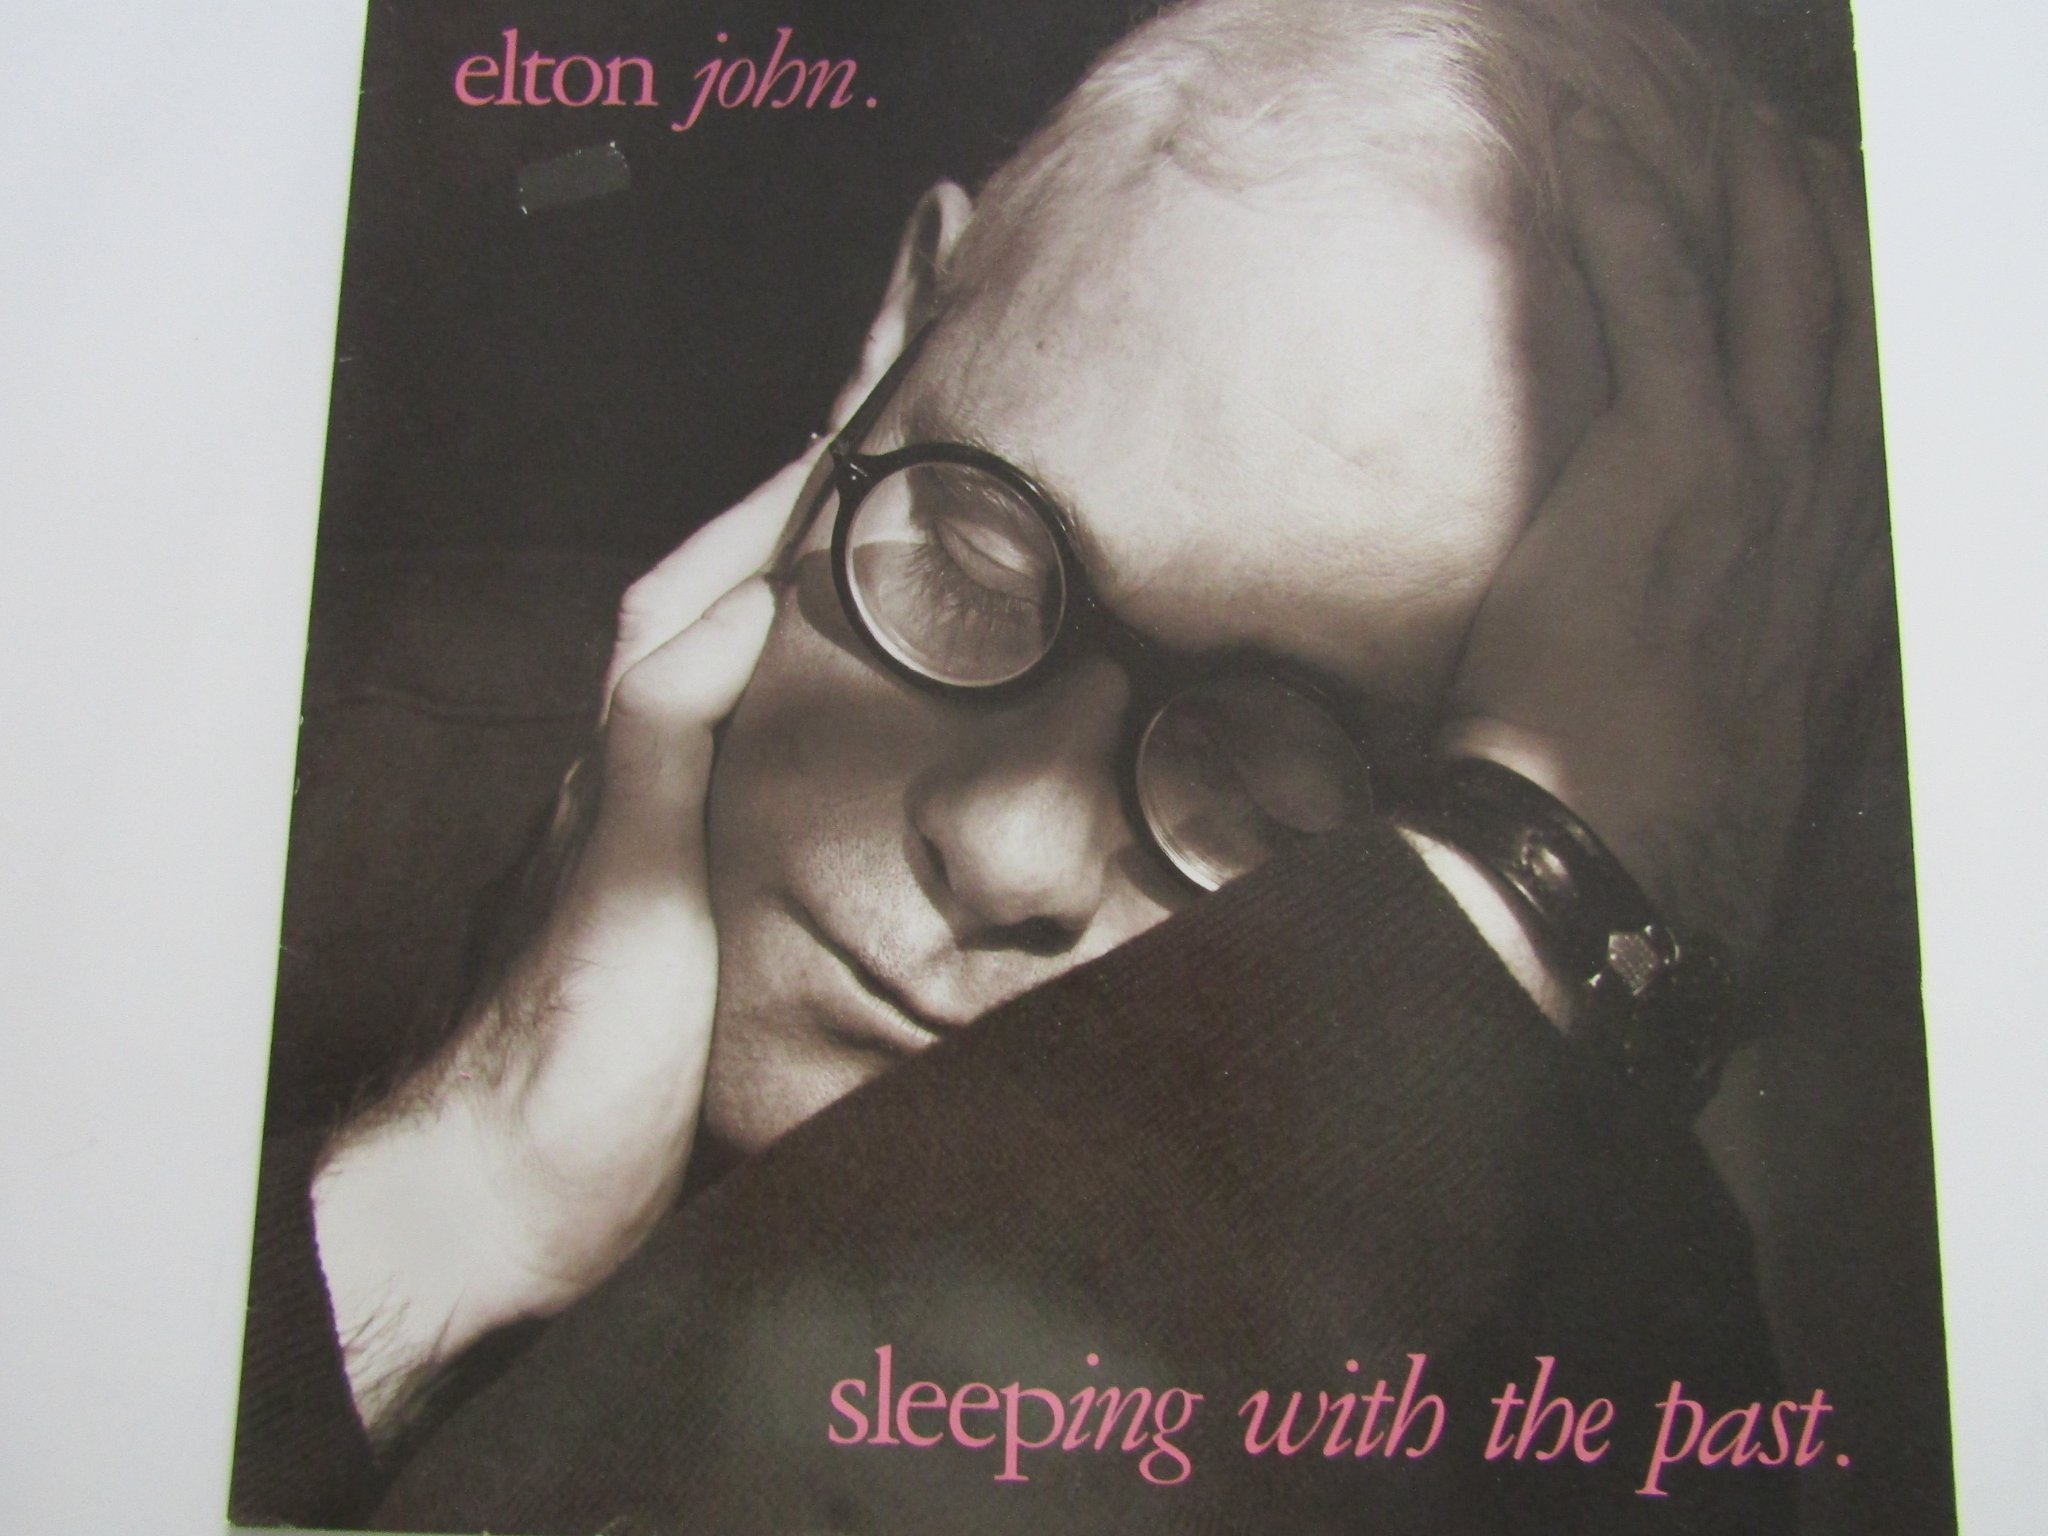 Elton John vinyl Sleeping With The Past. Från 1989.